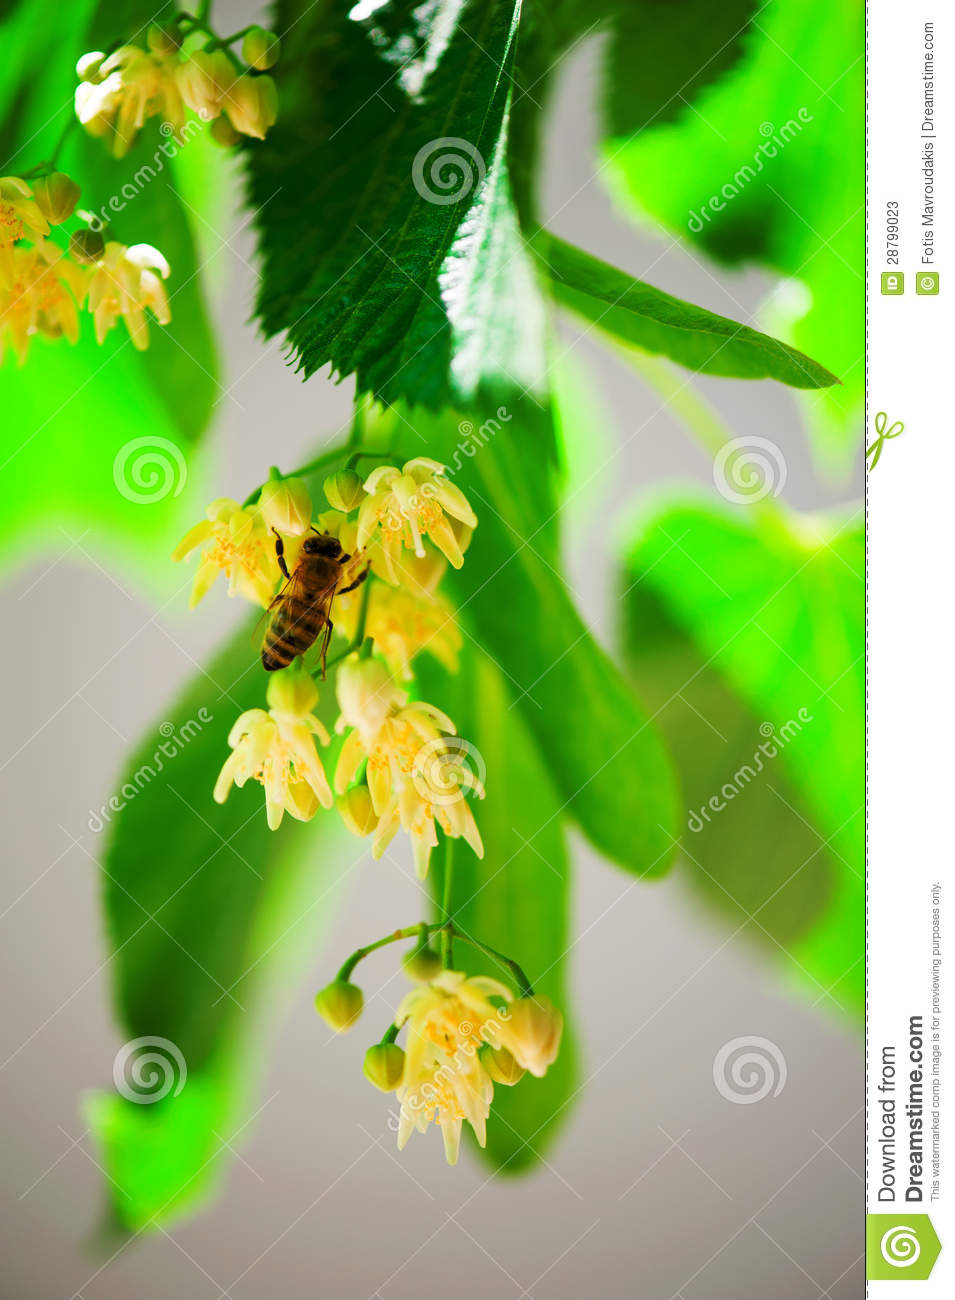 Bee on a lime tree